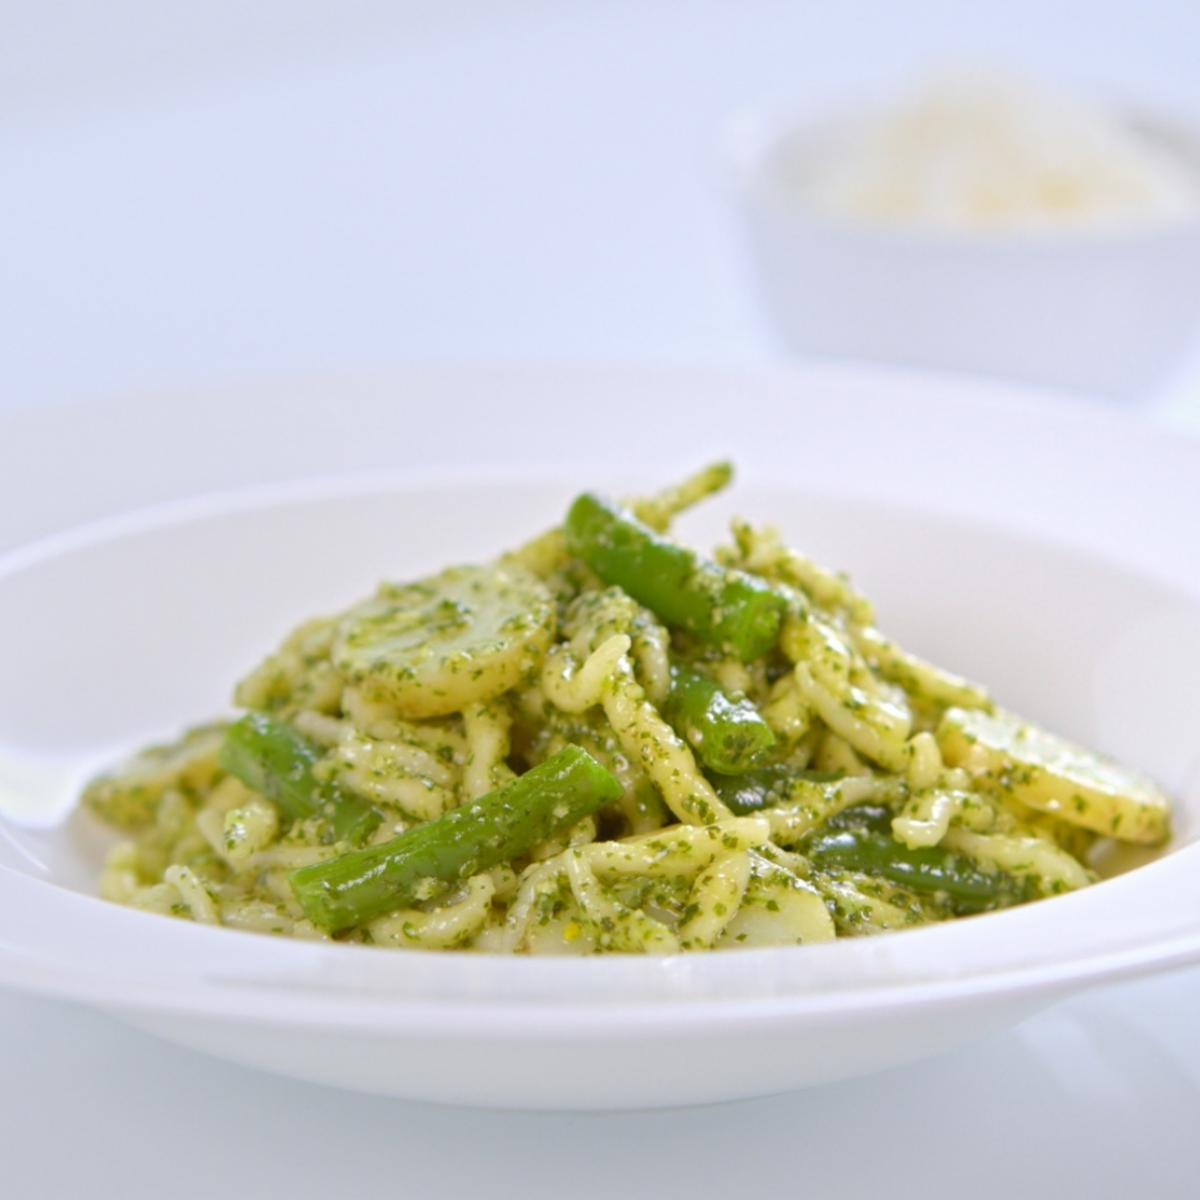 A picture of Delia's Trofie Pasta Liguria (Pasta with Pesto, Potatoes and Green Beans) recipe